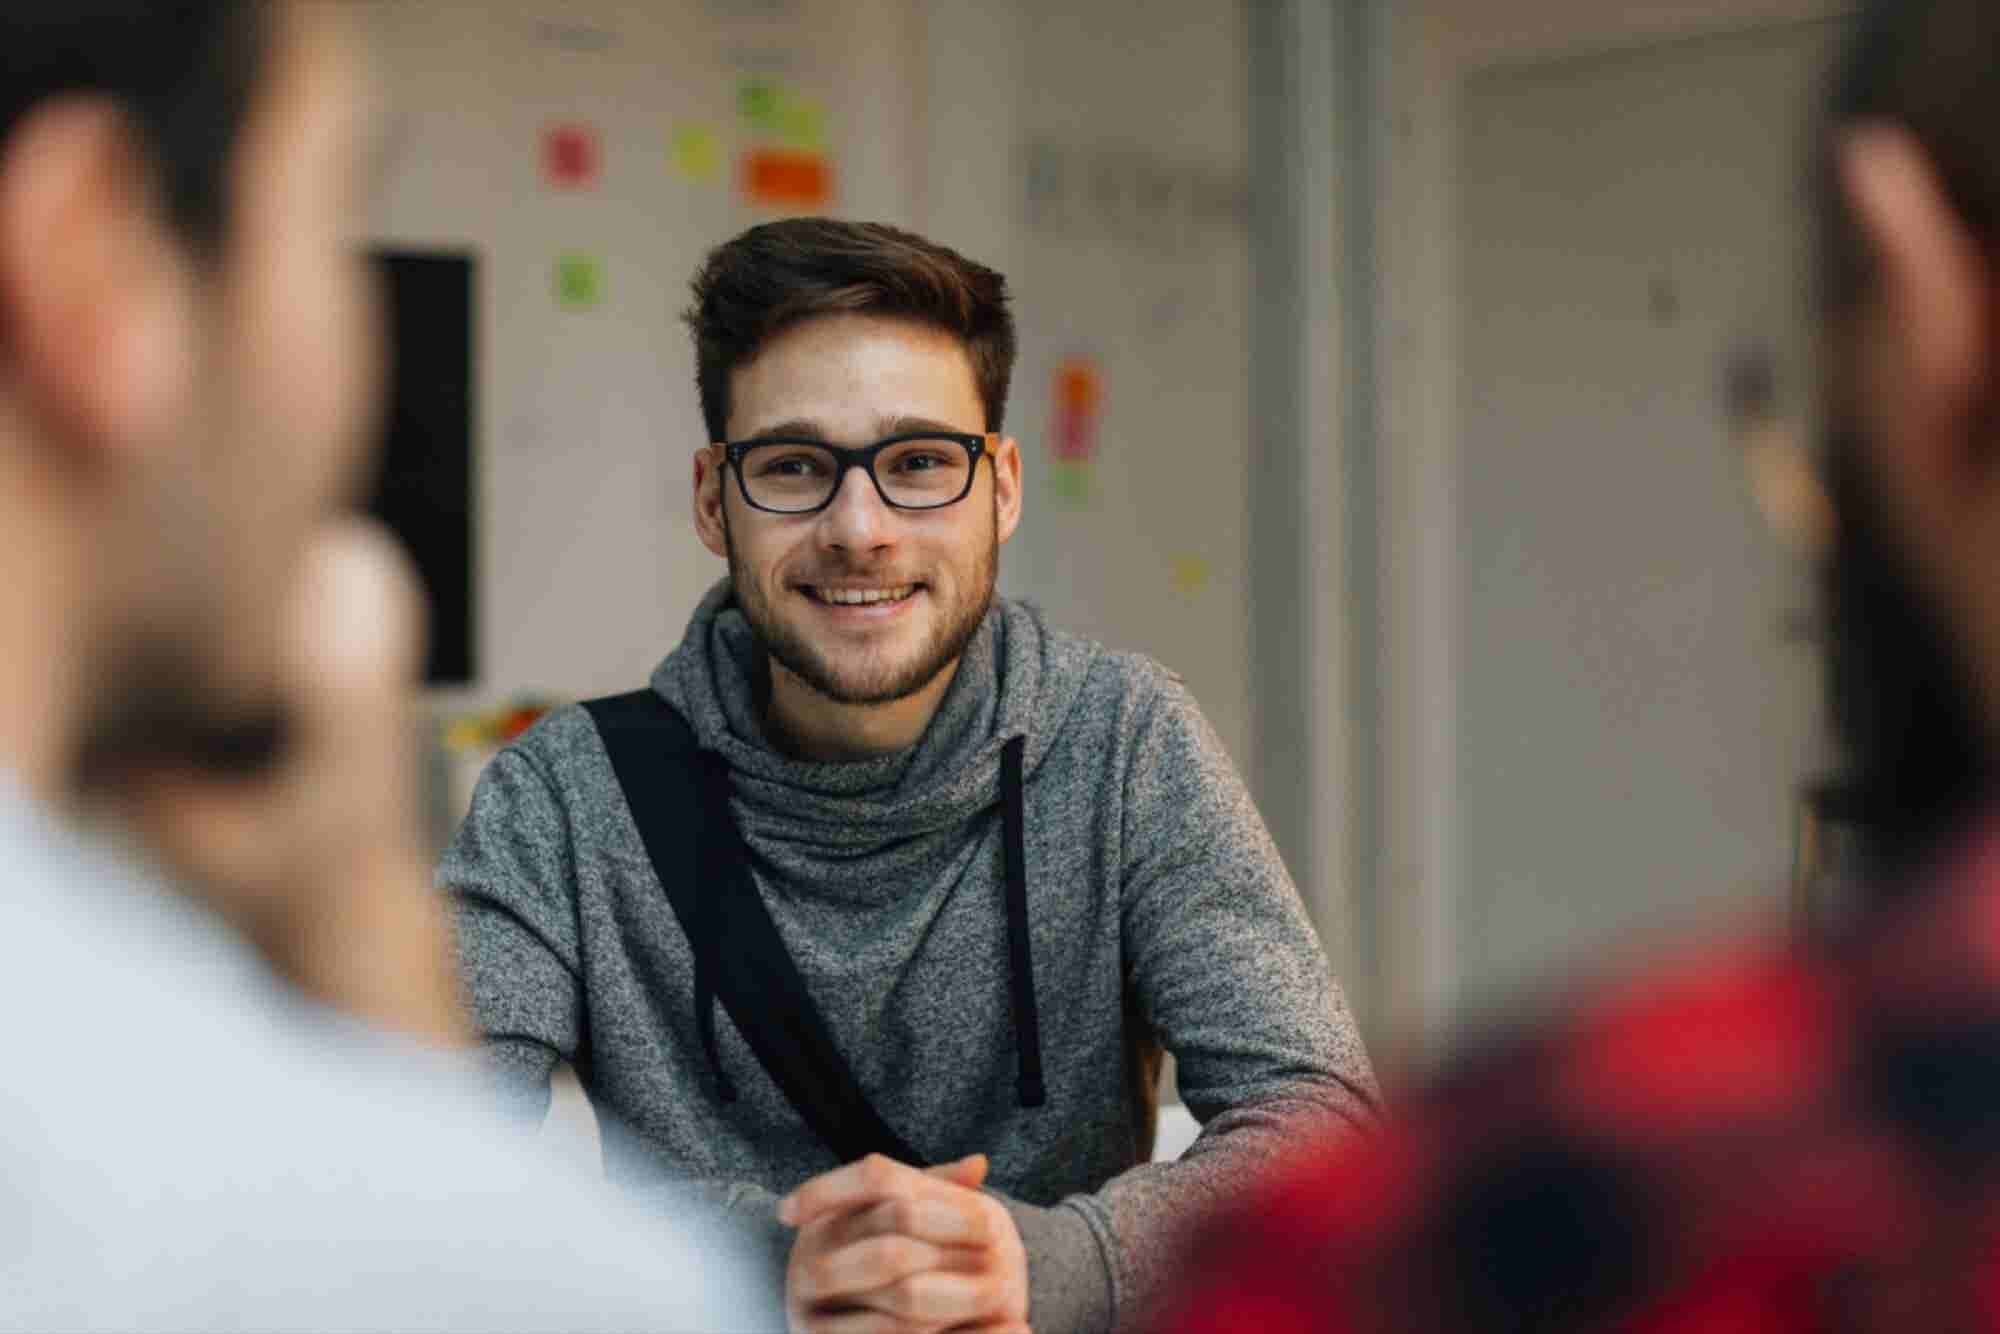 5 Tips for Hiring the Talent You Need In a Tight Labor Market